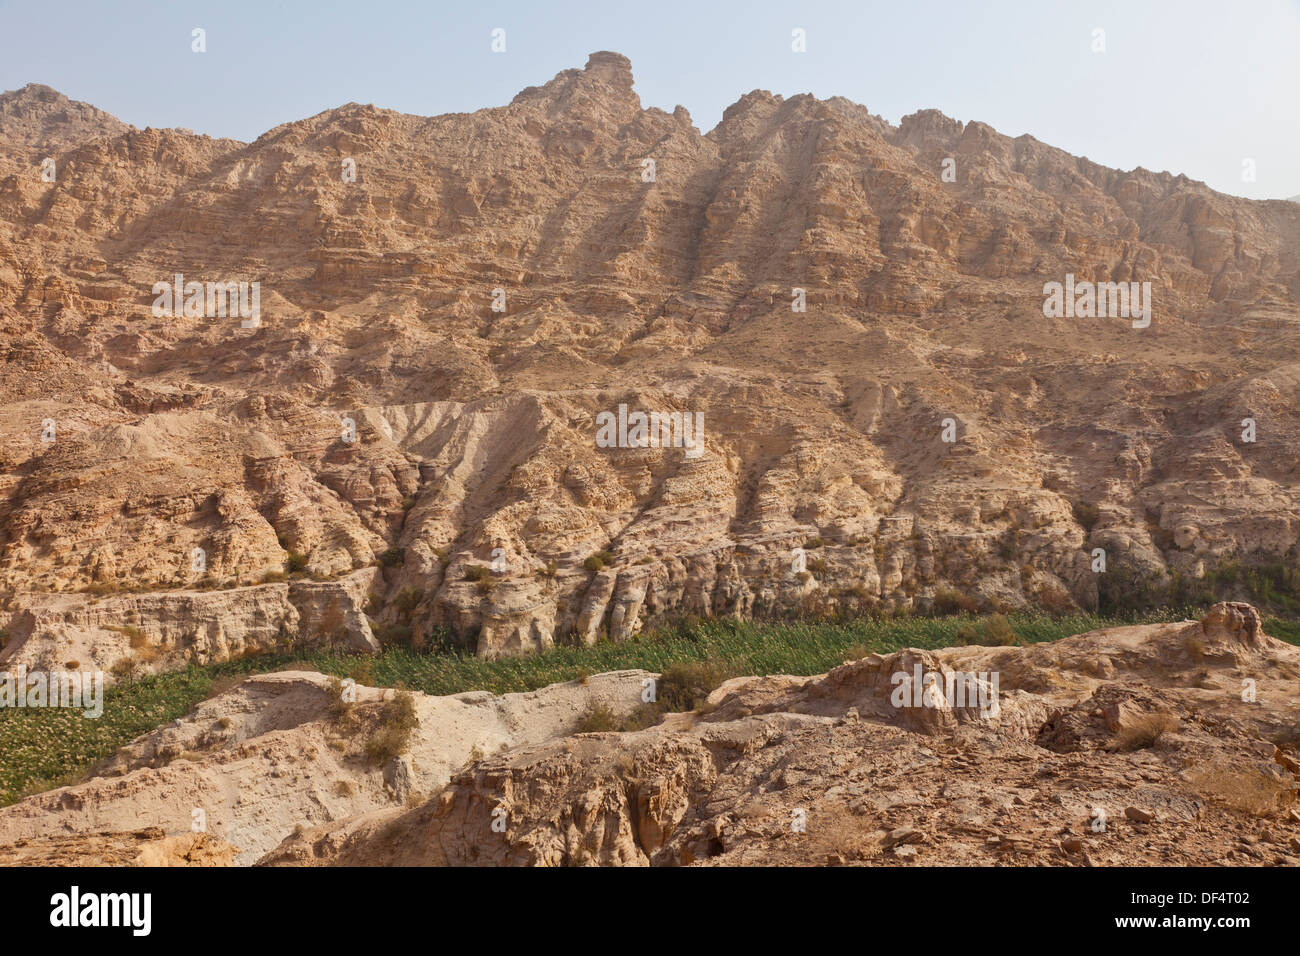 Canyon in Fifa, Dead Sea, Rift Valley Jordan, Middle East. - Stock Image